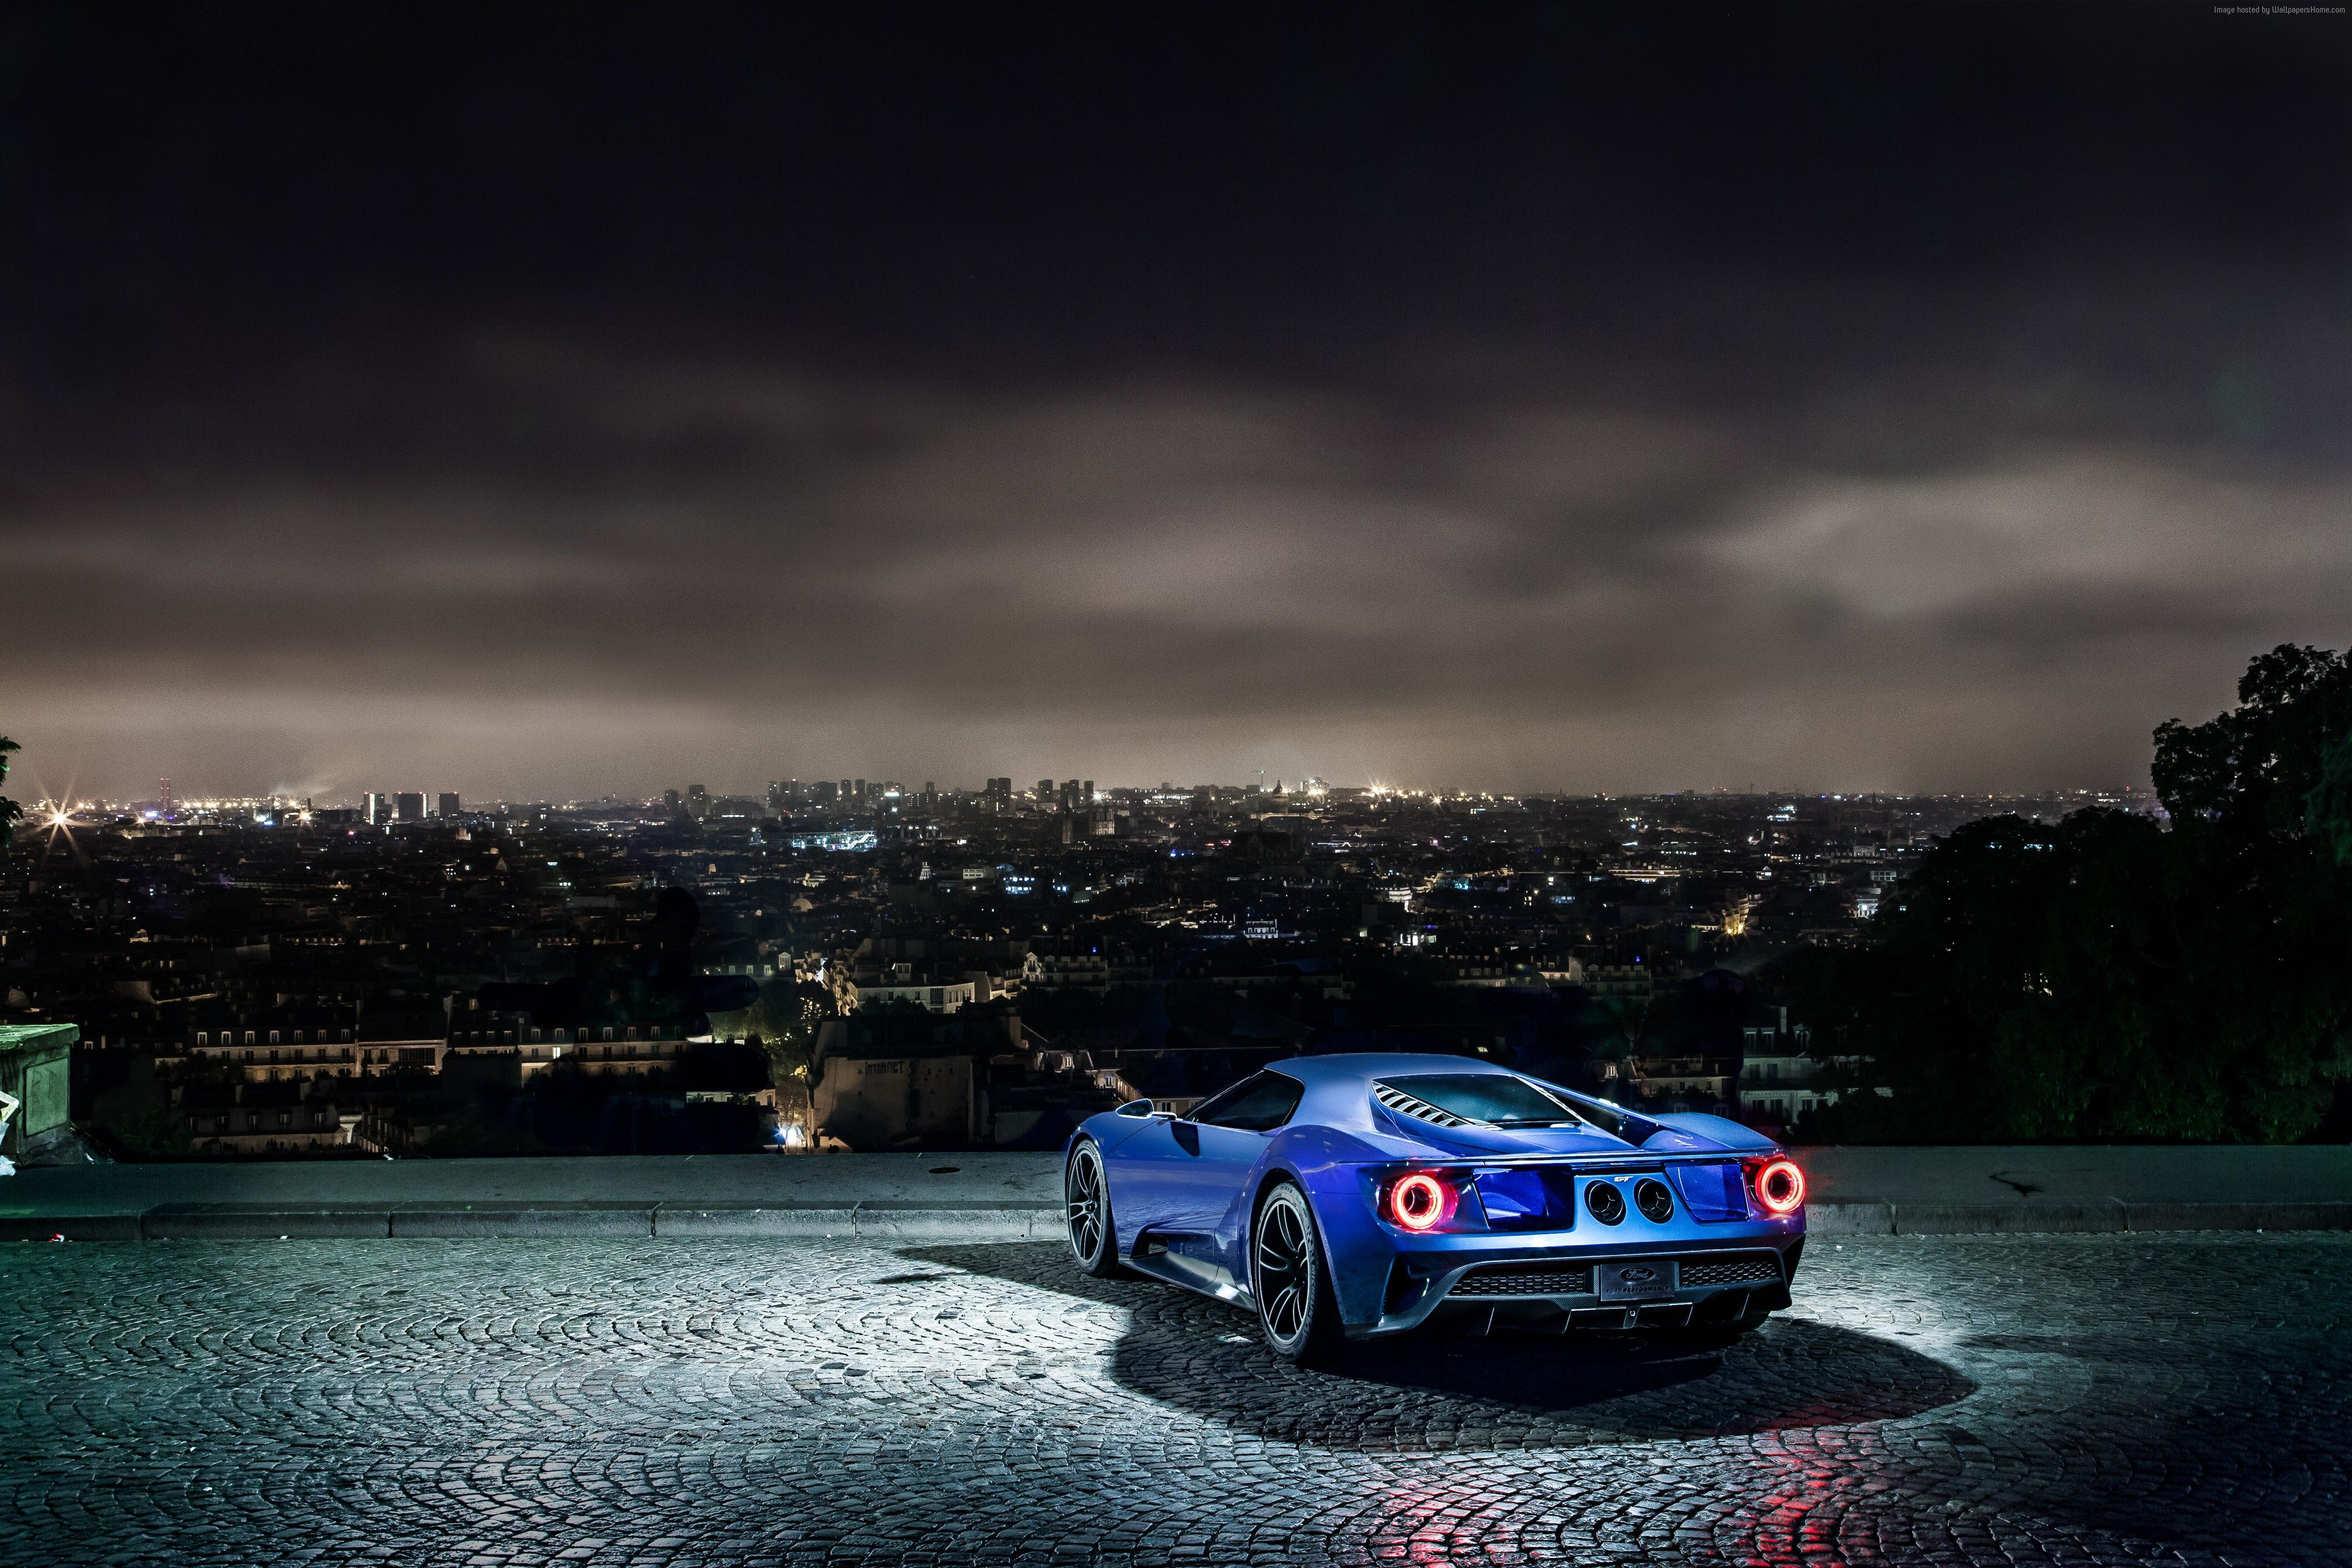 Ford Gt Supercars American Cars 2017 4k Uhd Widescreen: Cool Ford Gt With Wonderful Background 4k Wallpaper